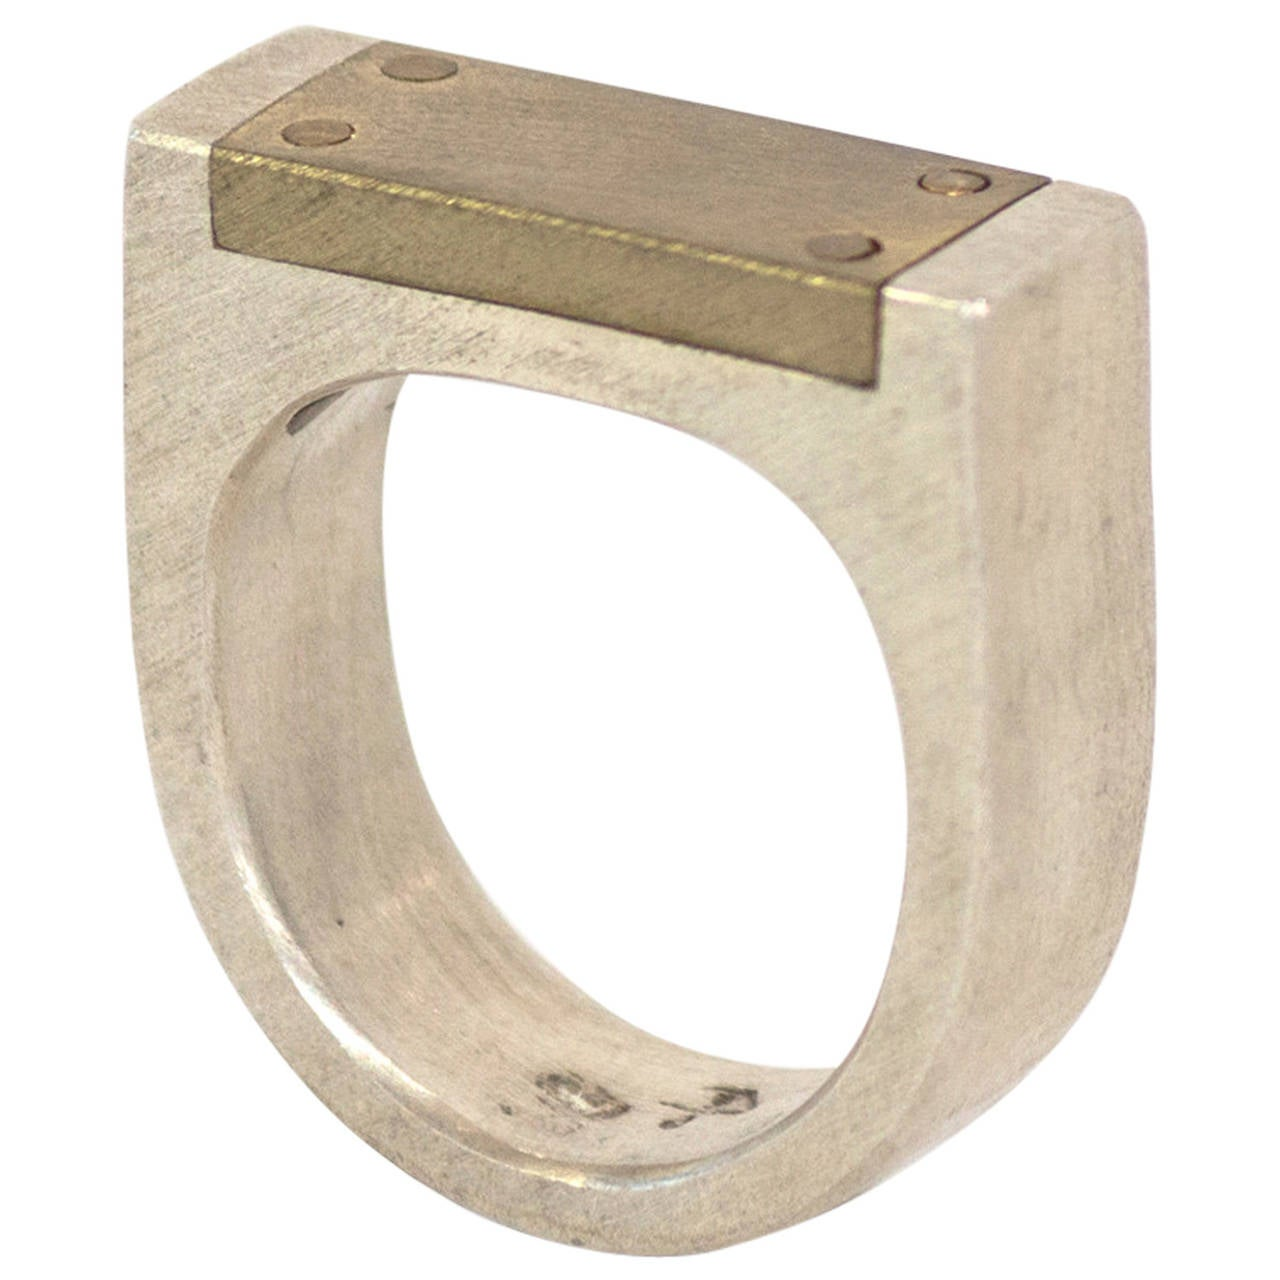 Plane Ring by Parts of Four